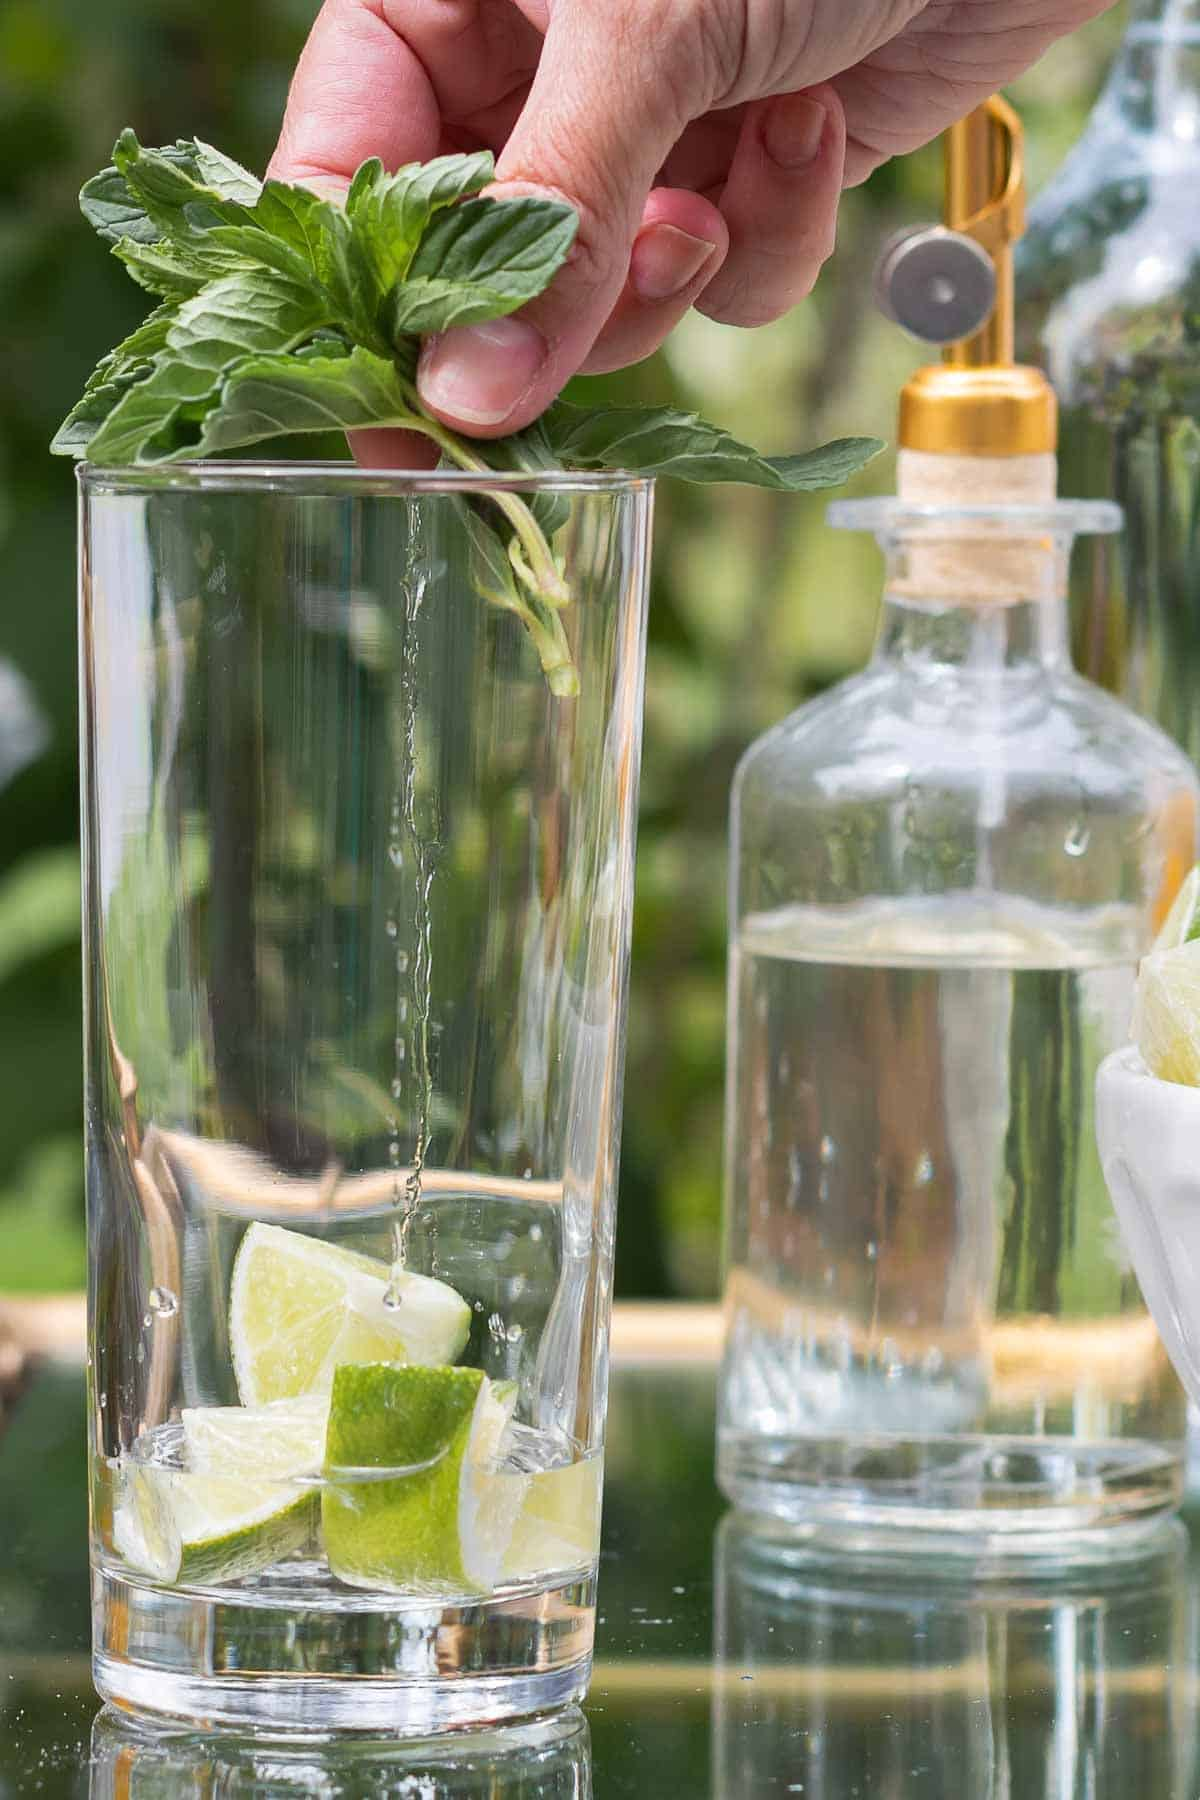 A mojito bar set up on a gold and glass bar cart, a hand reaching over to place fresh mint in a glass.